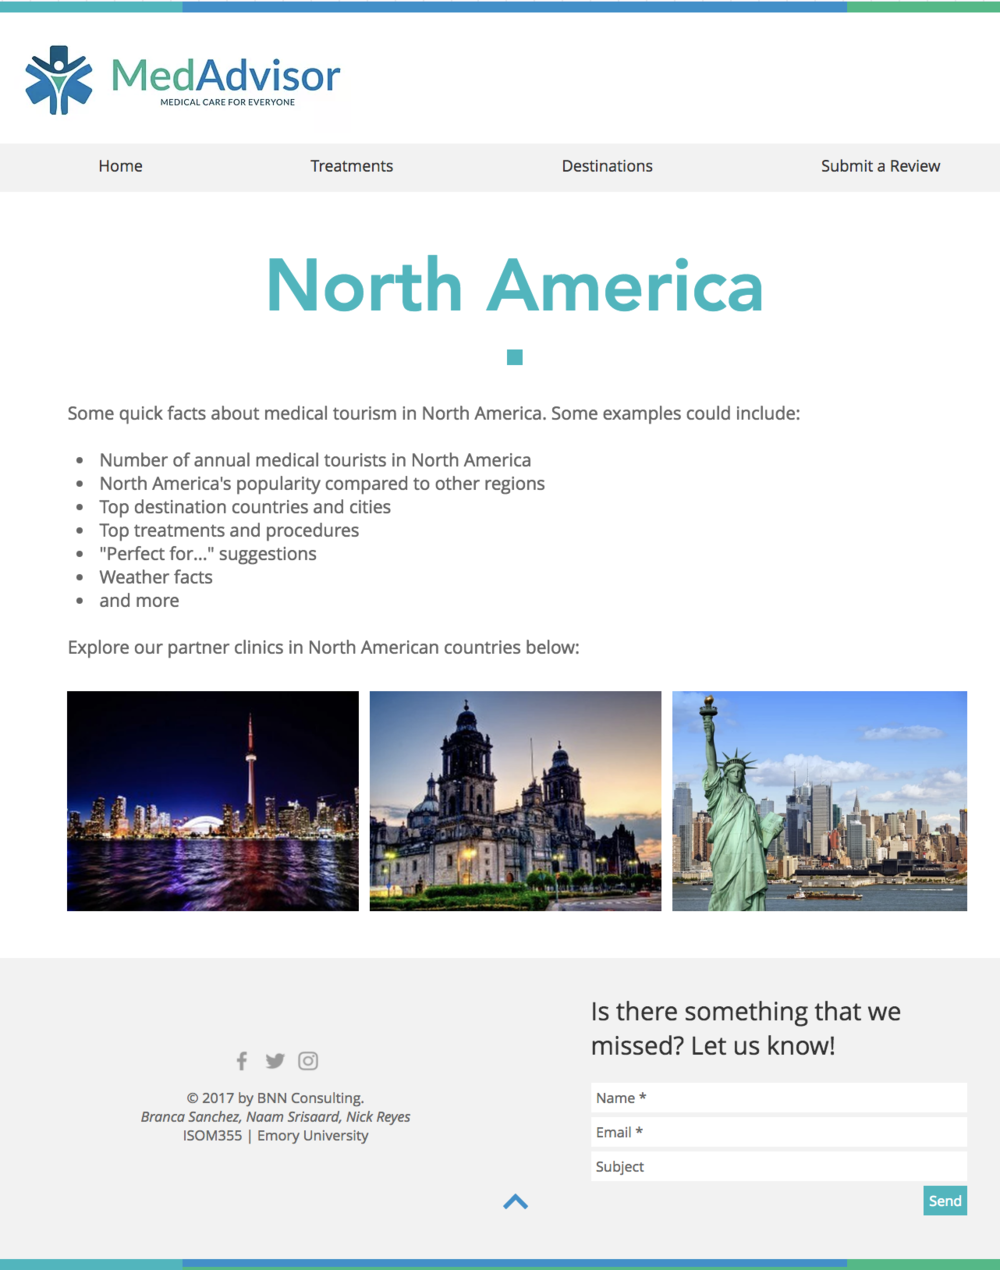 Screenshot - BNN Consulting Sample Destination.png